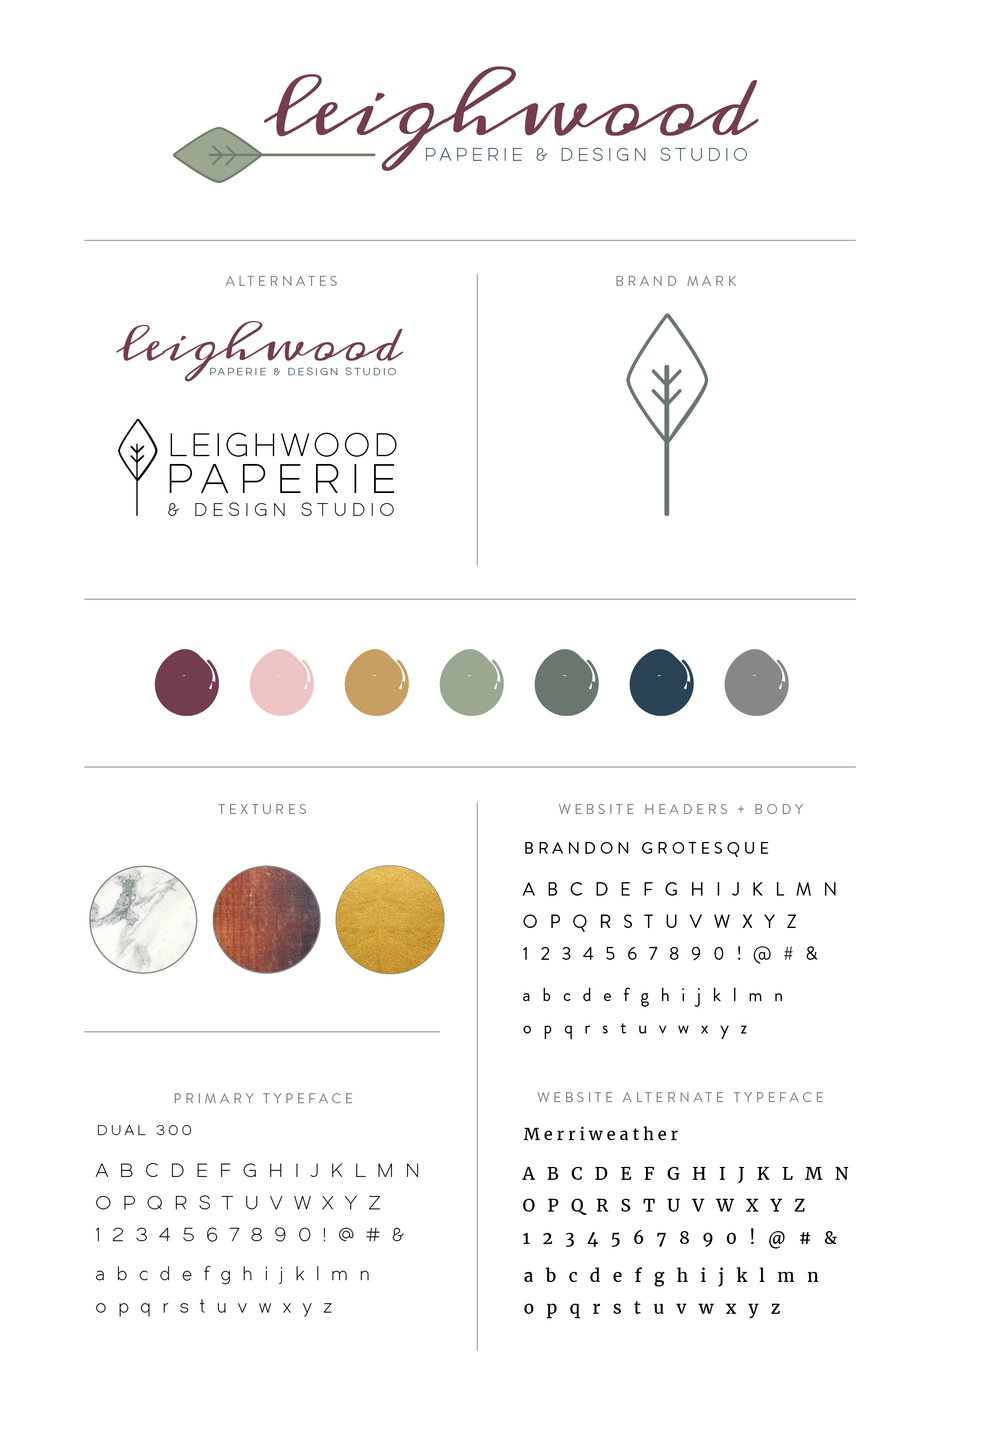 Leighwood Paperie >> Brand style guide